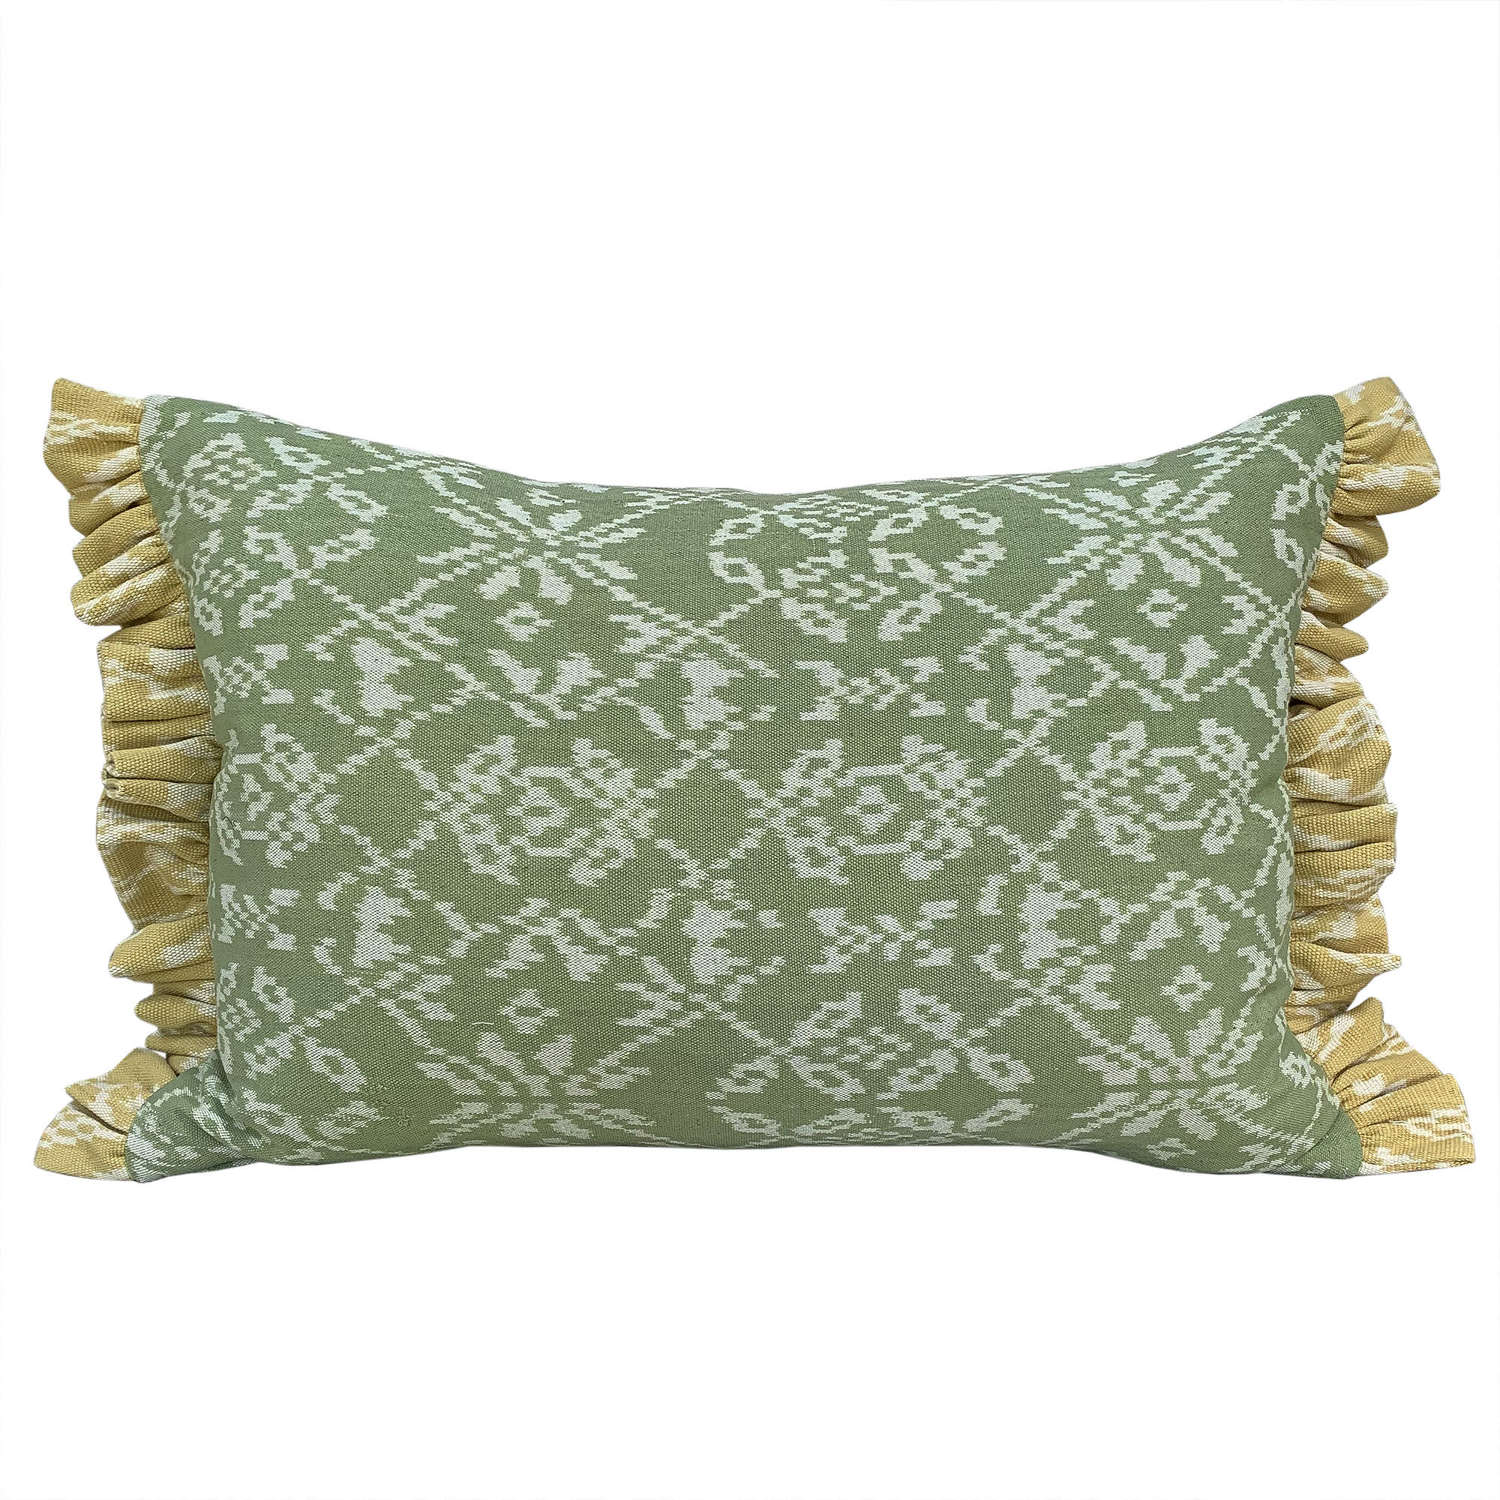 Rote ikat cushion, green with yellow trim